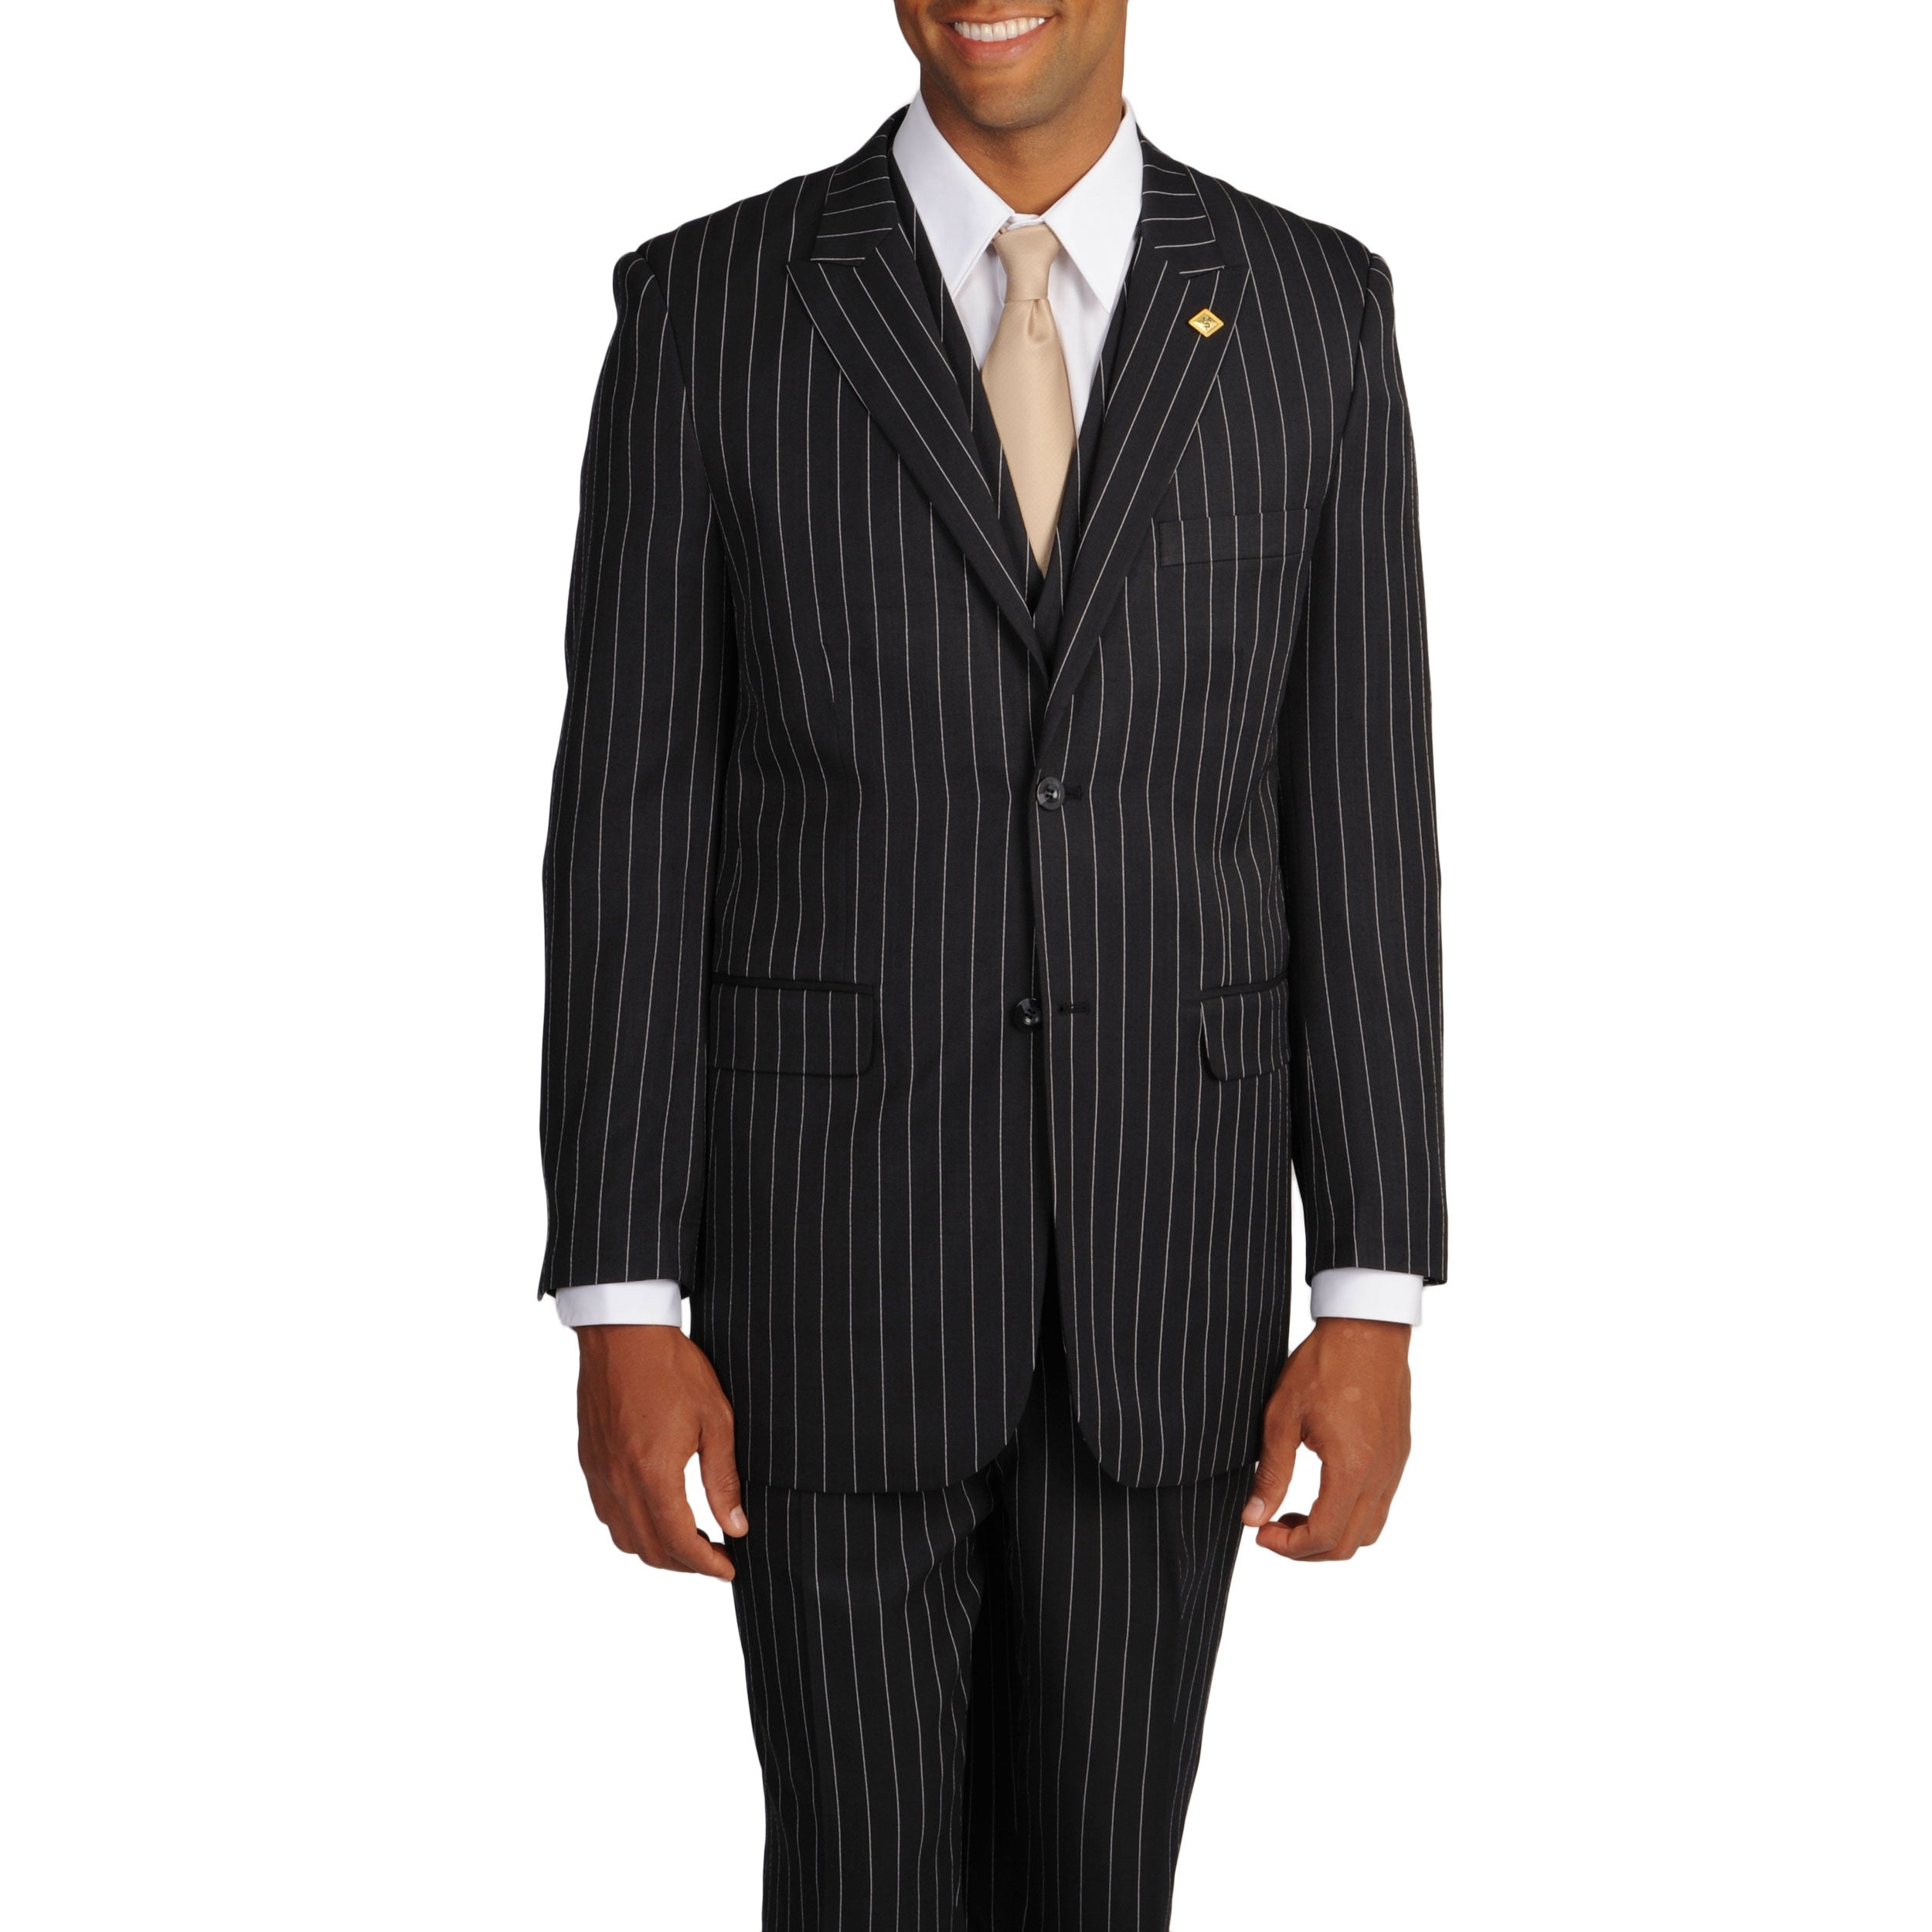 579385a5b21 Shop Stacy Adams Men s Black White Stripe 3-piece Suit - Free Shipping  Today - Overstock - 8144003